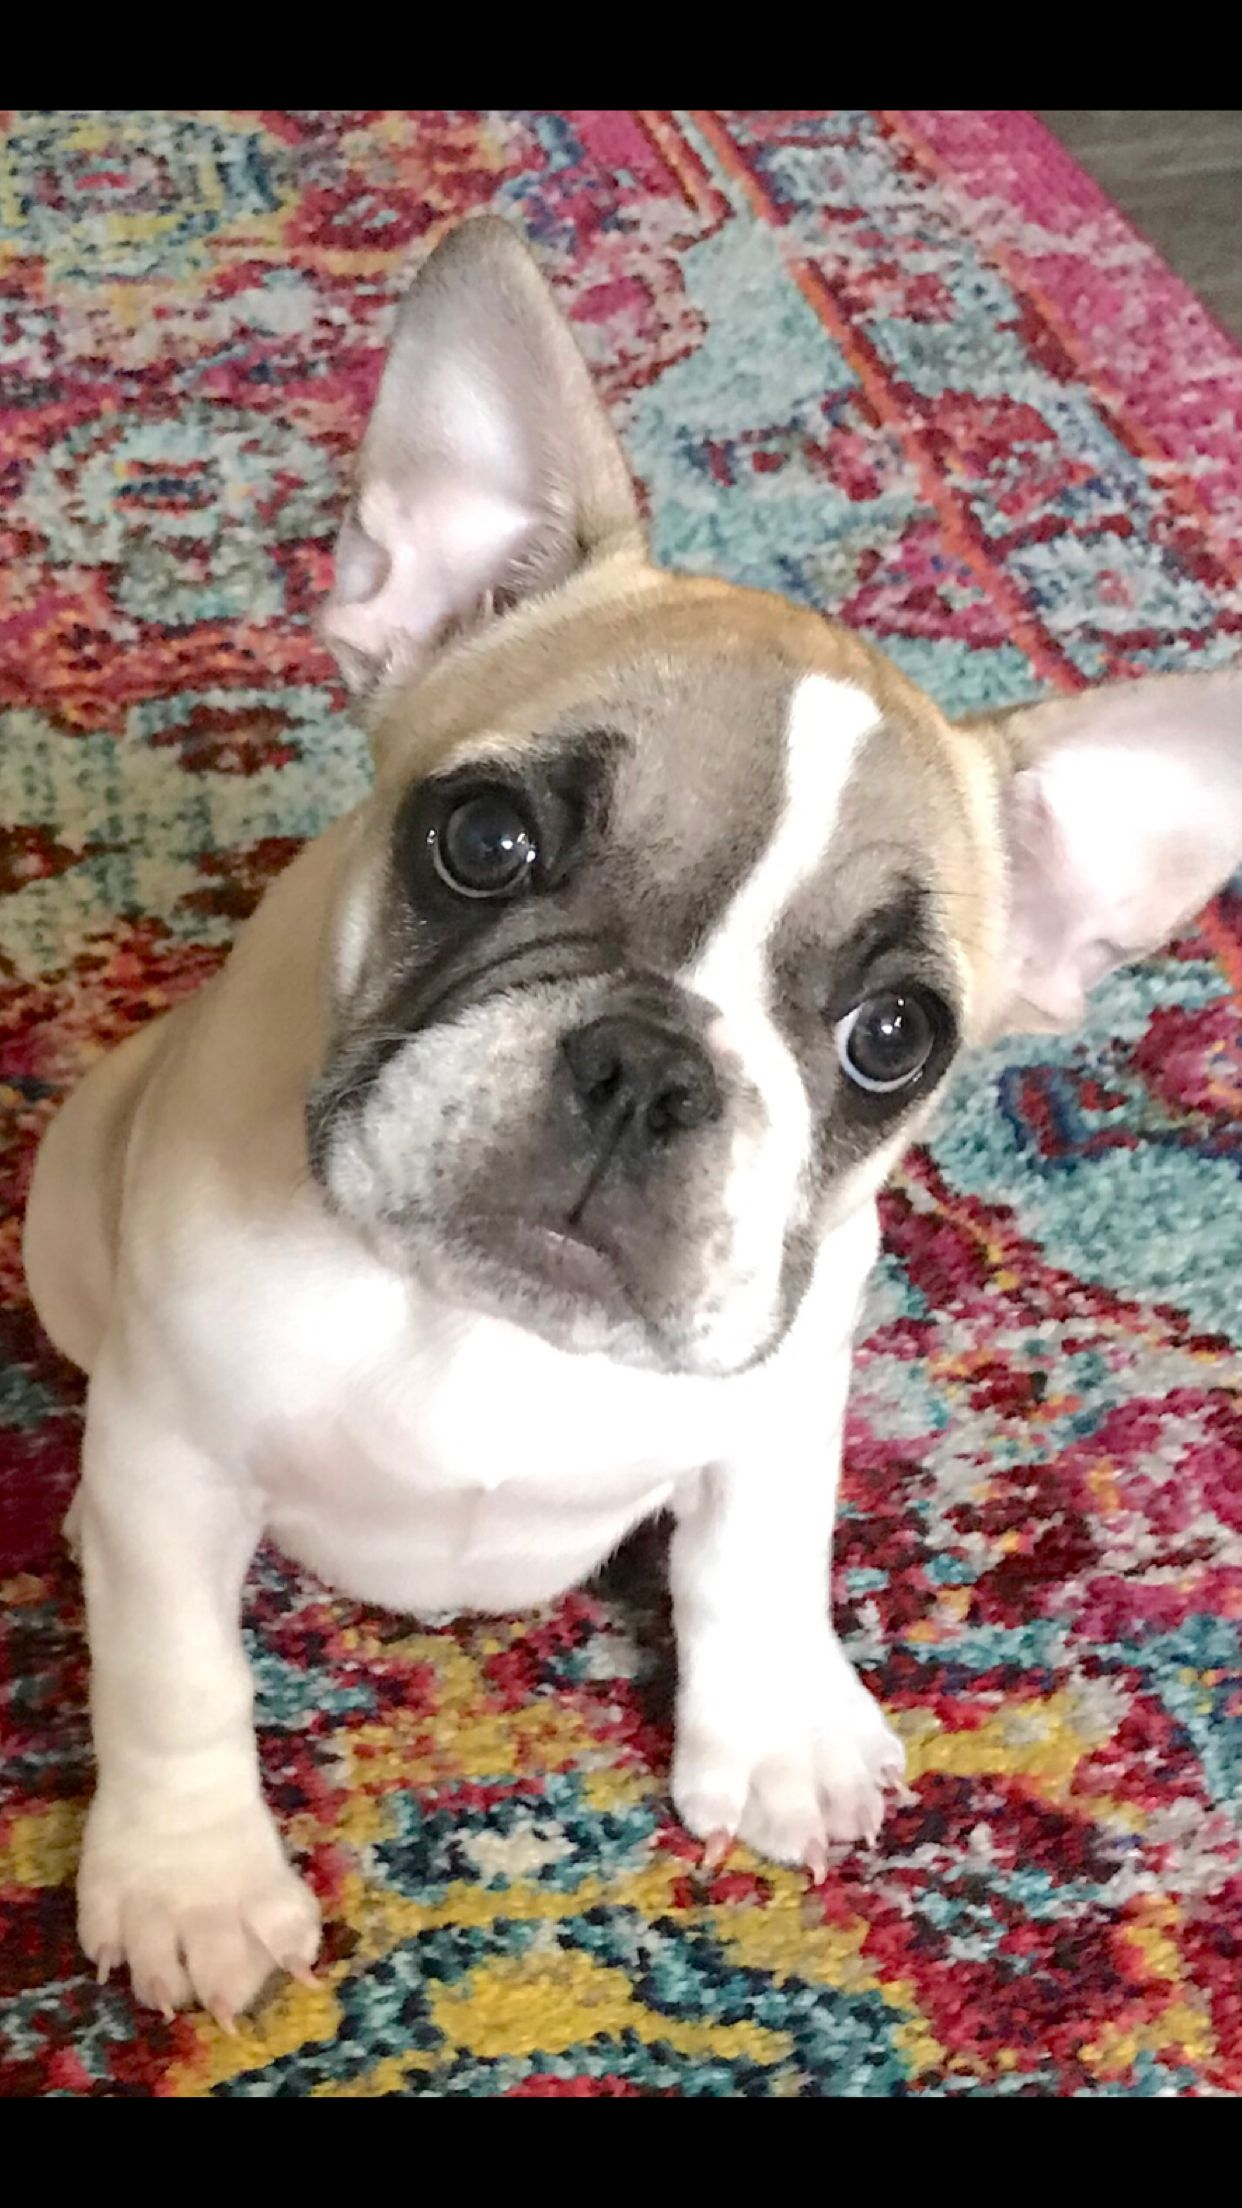 12 Week Old Lucy The French Bulldog Cuddly Animals Puppy Time